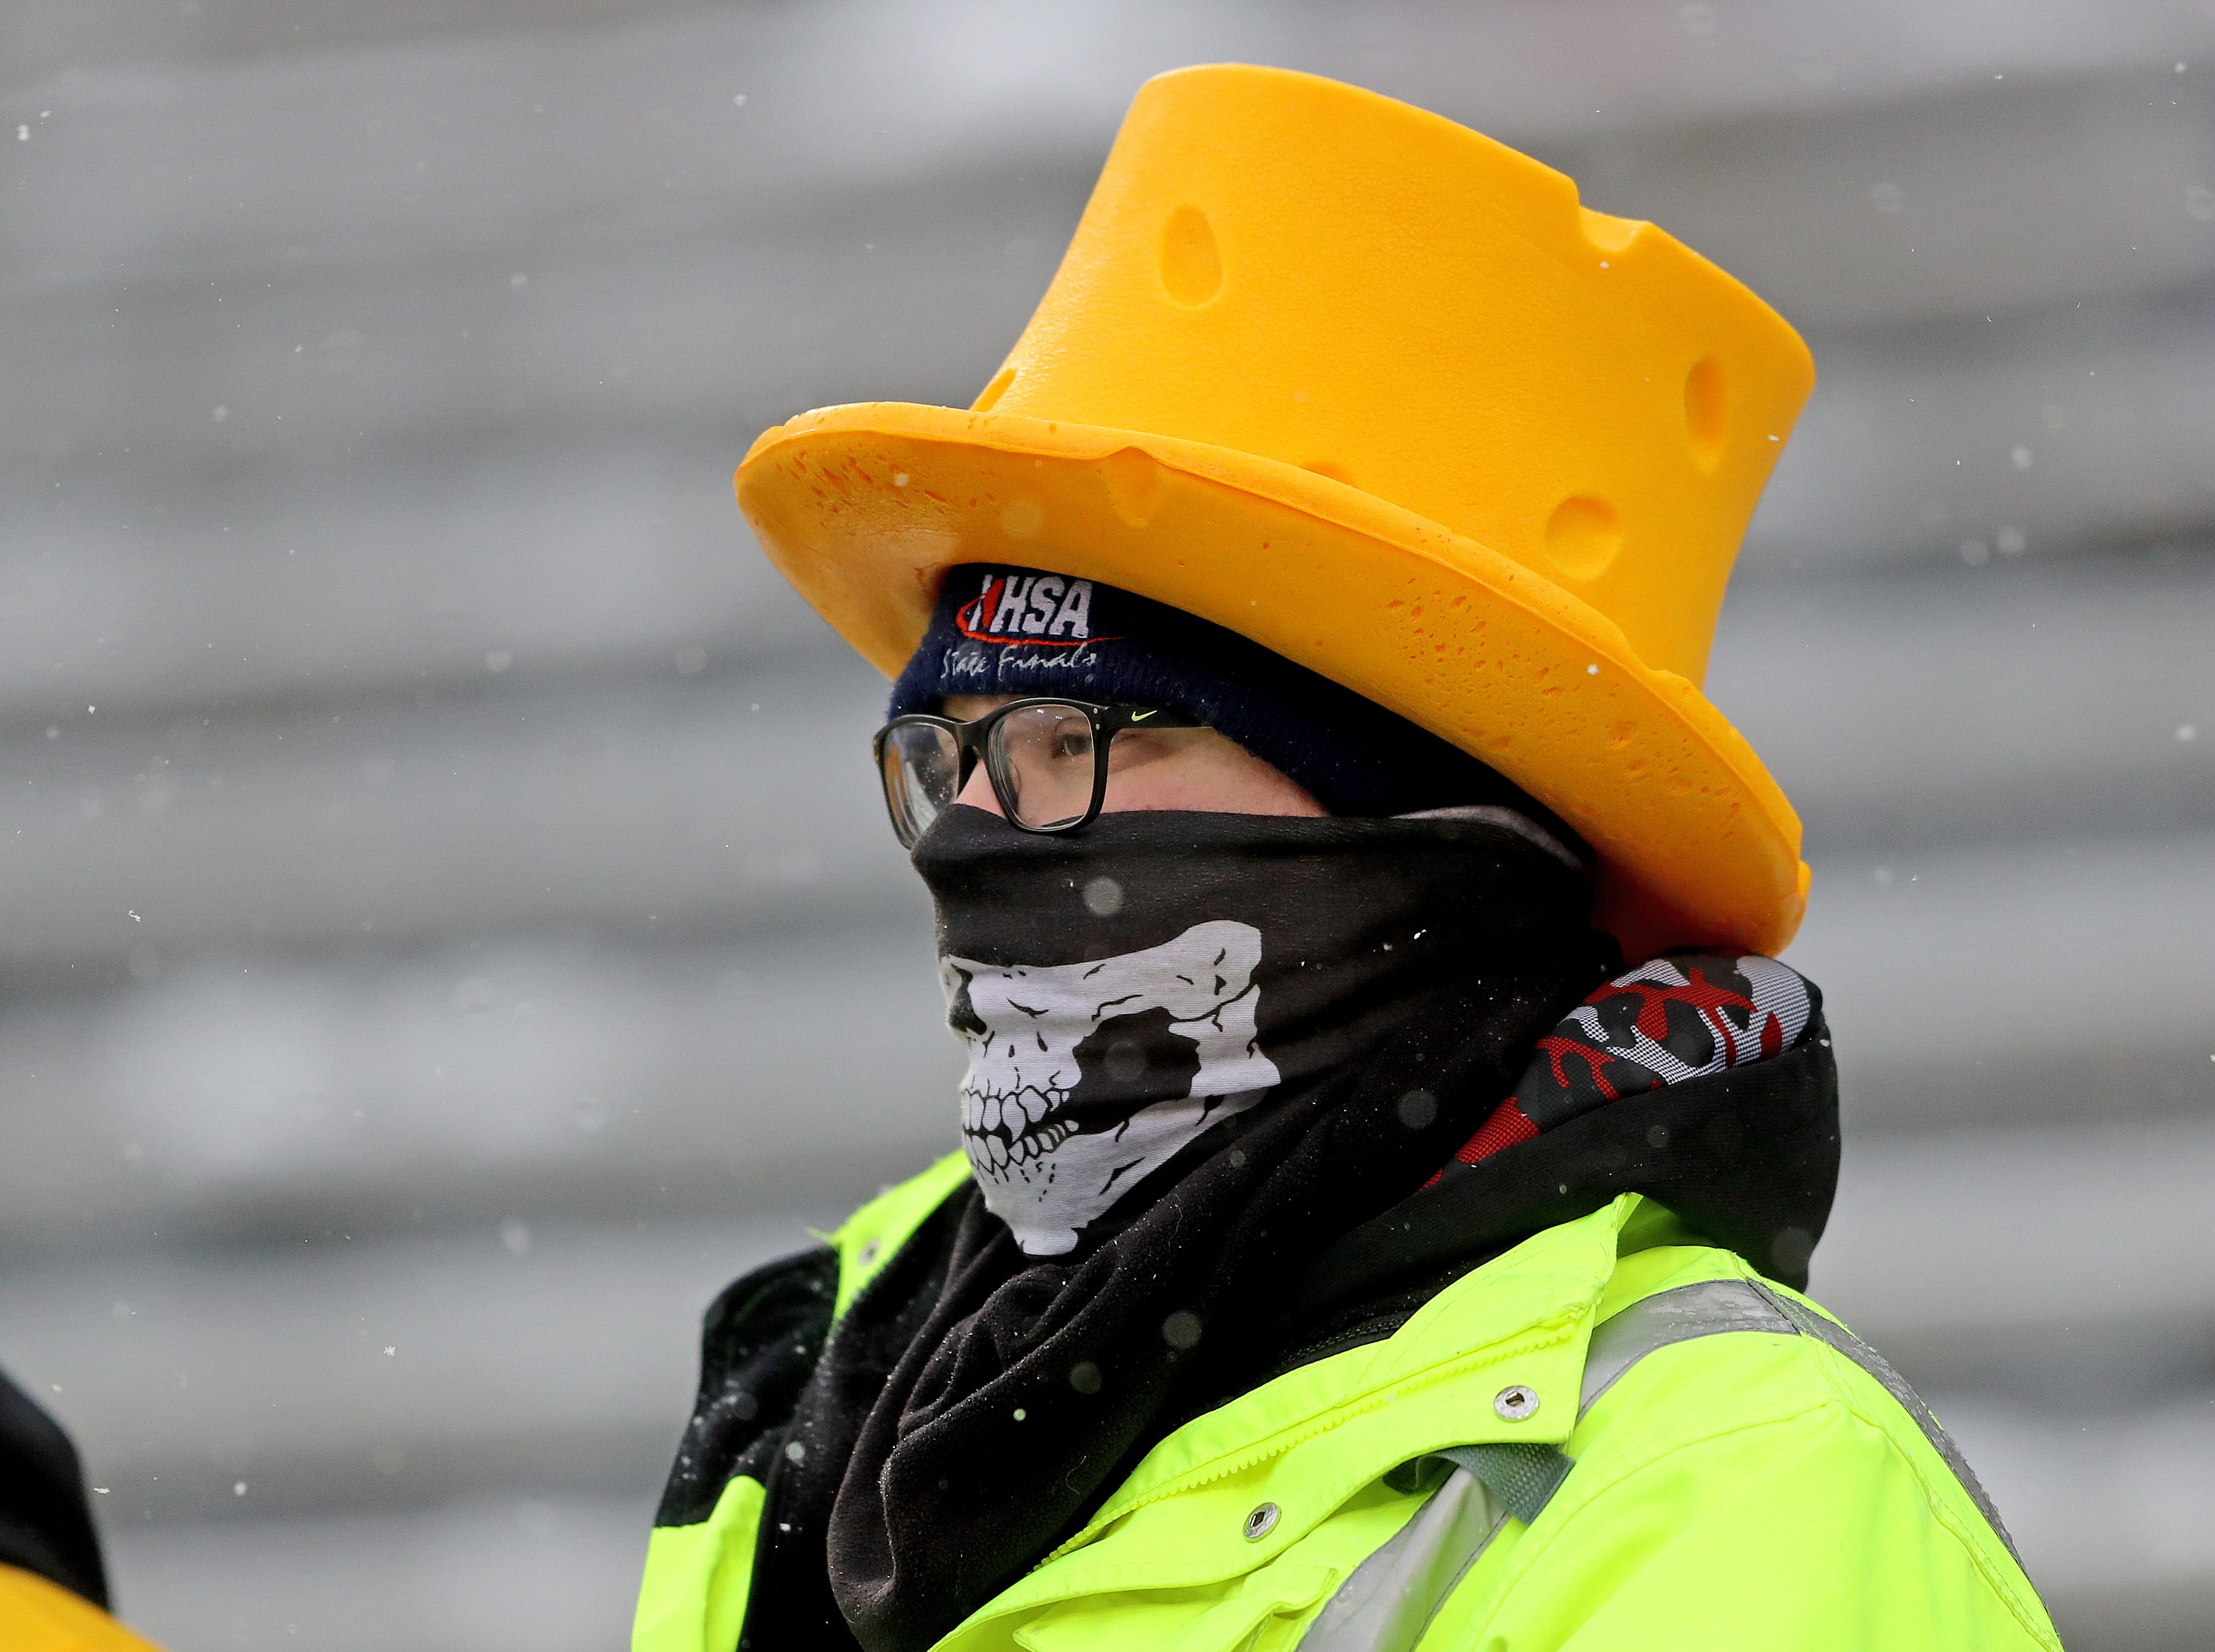 Packers fans show their winter gear before the game against the Arizona Cardinals Sunday, December 2, 2018 at Lambeau Field in Green Bay, Wis.